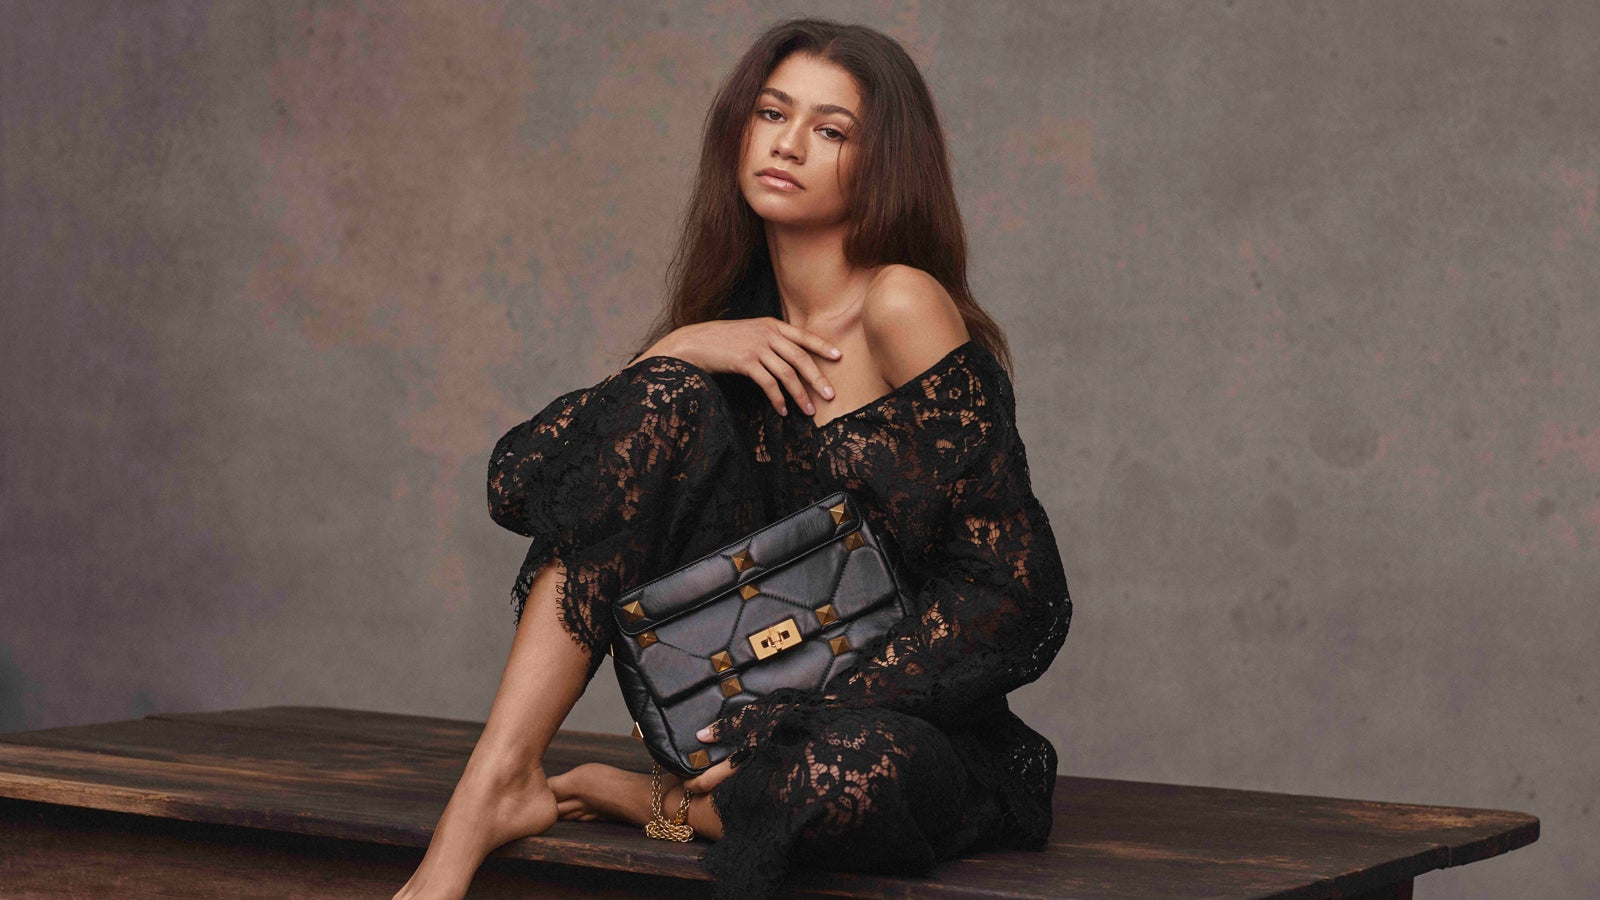 Zendaya Is The New Face Of The Fashion Label Valentino